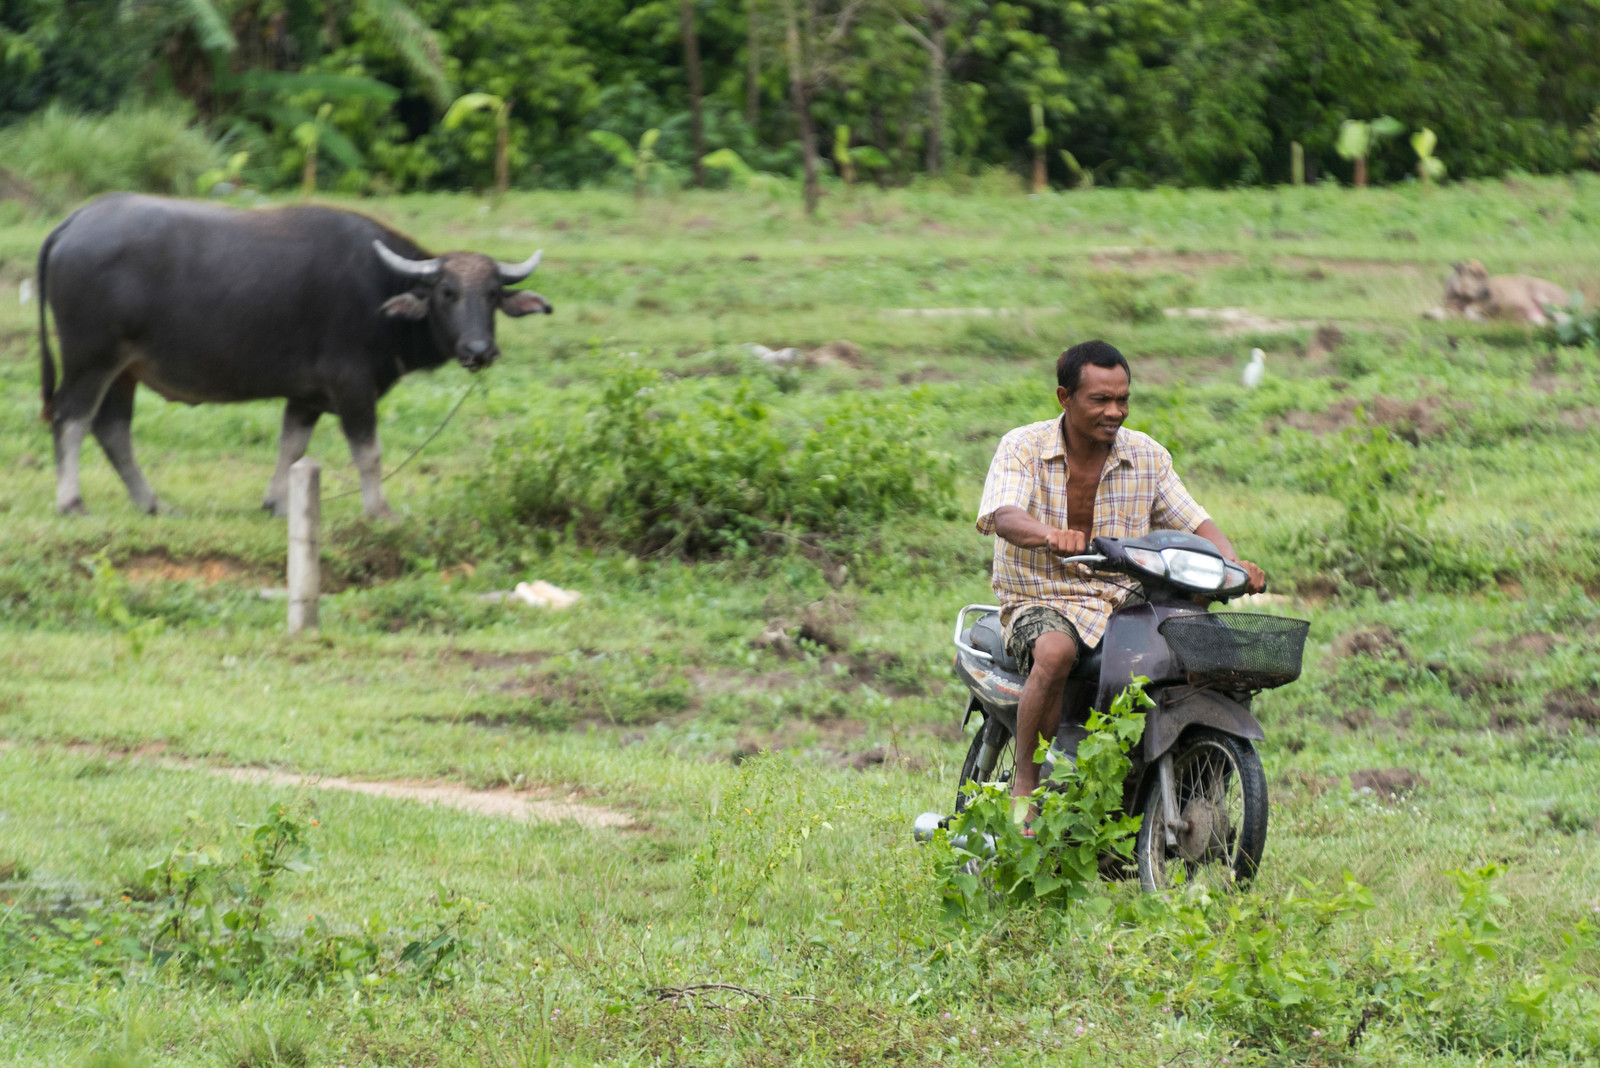 Man riding motorcycle in field, Koh Samui, Surat Thani Province, Thailand